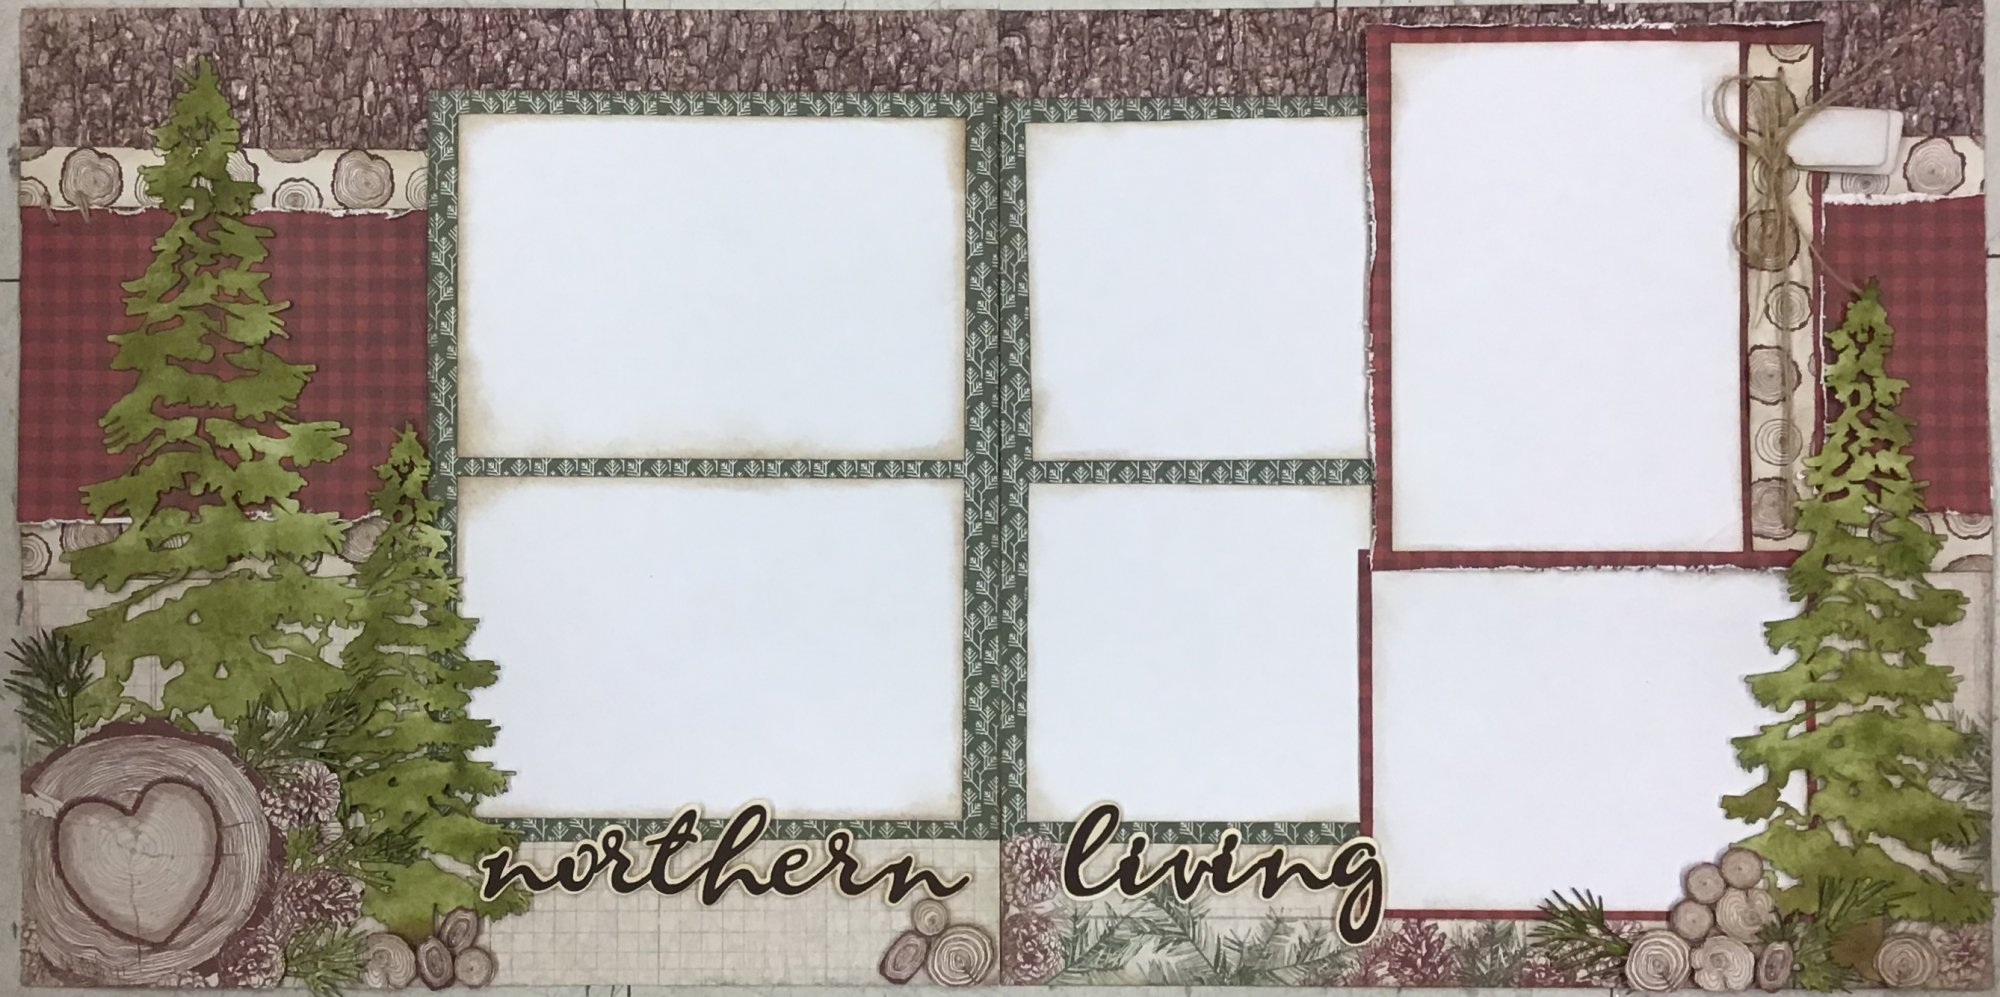 Northern Living 12x12 Layout Kit